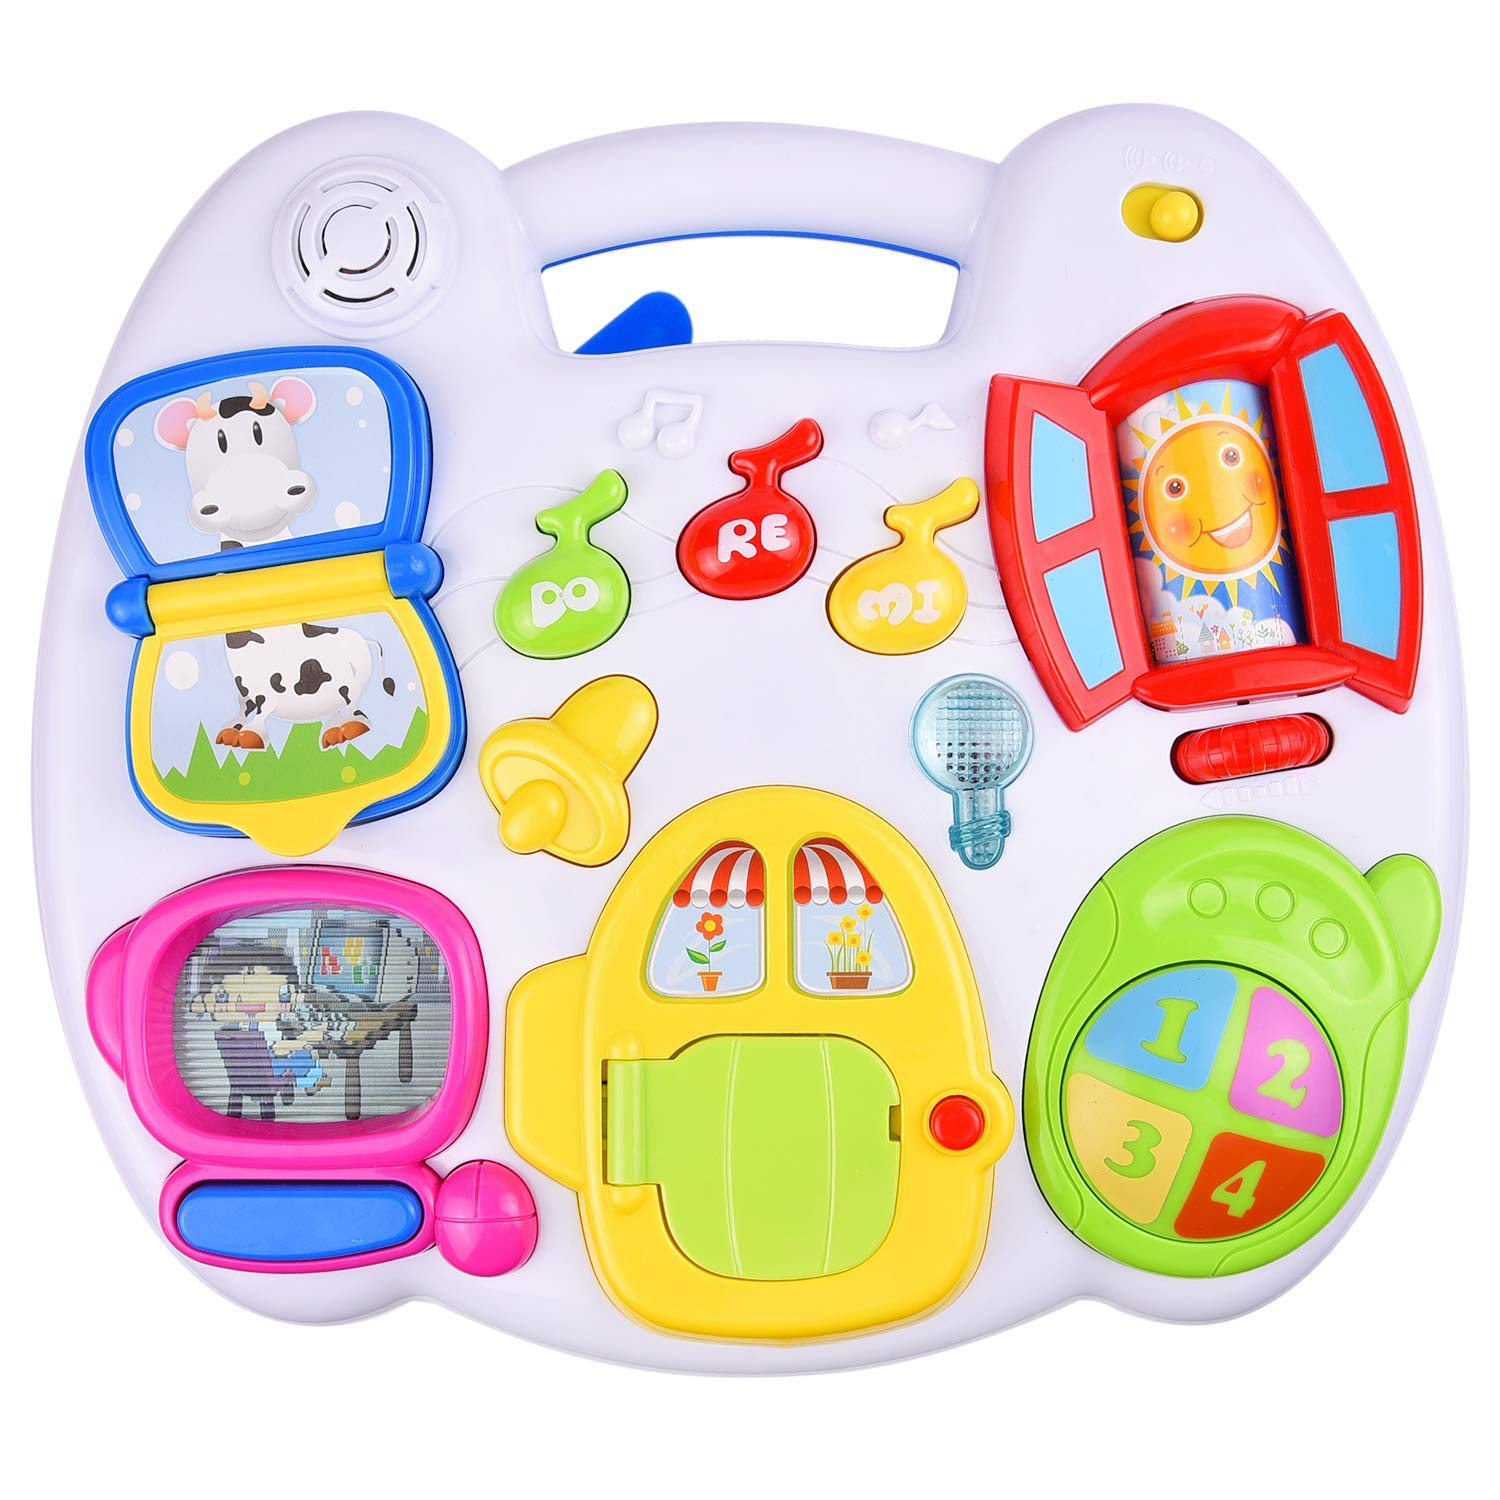 R GB GROUP DIGO Interesting Studying Tables 3 in 1 Puzzle Toys for Baby  Multicolor